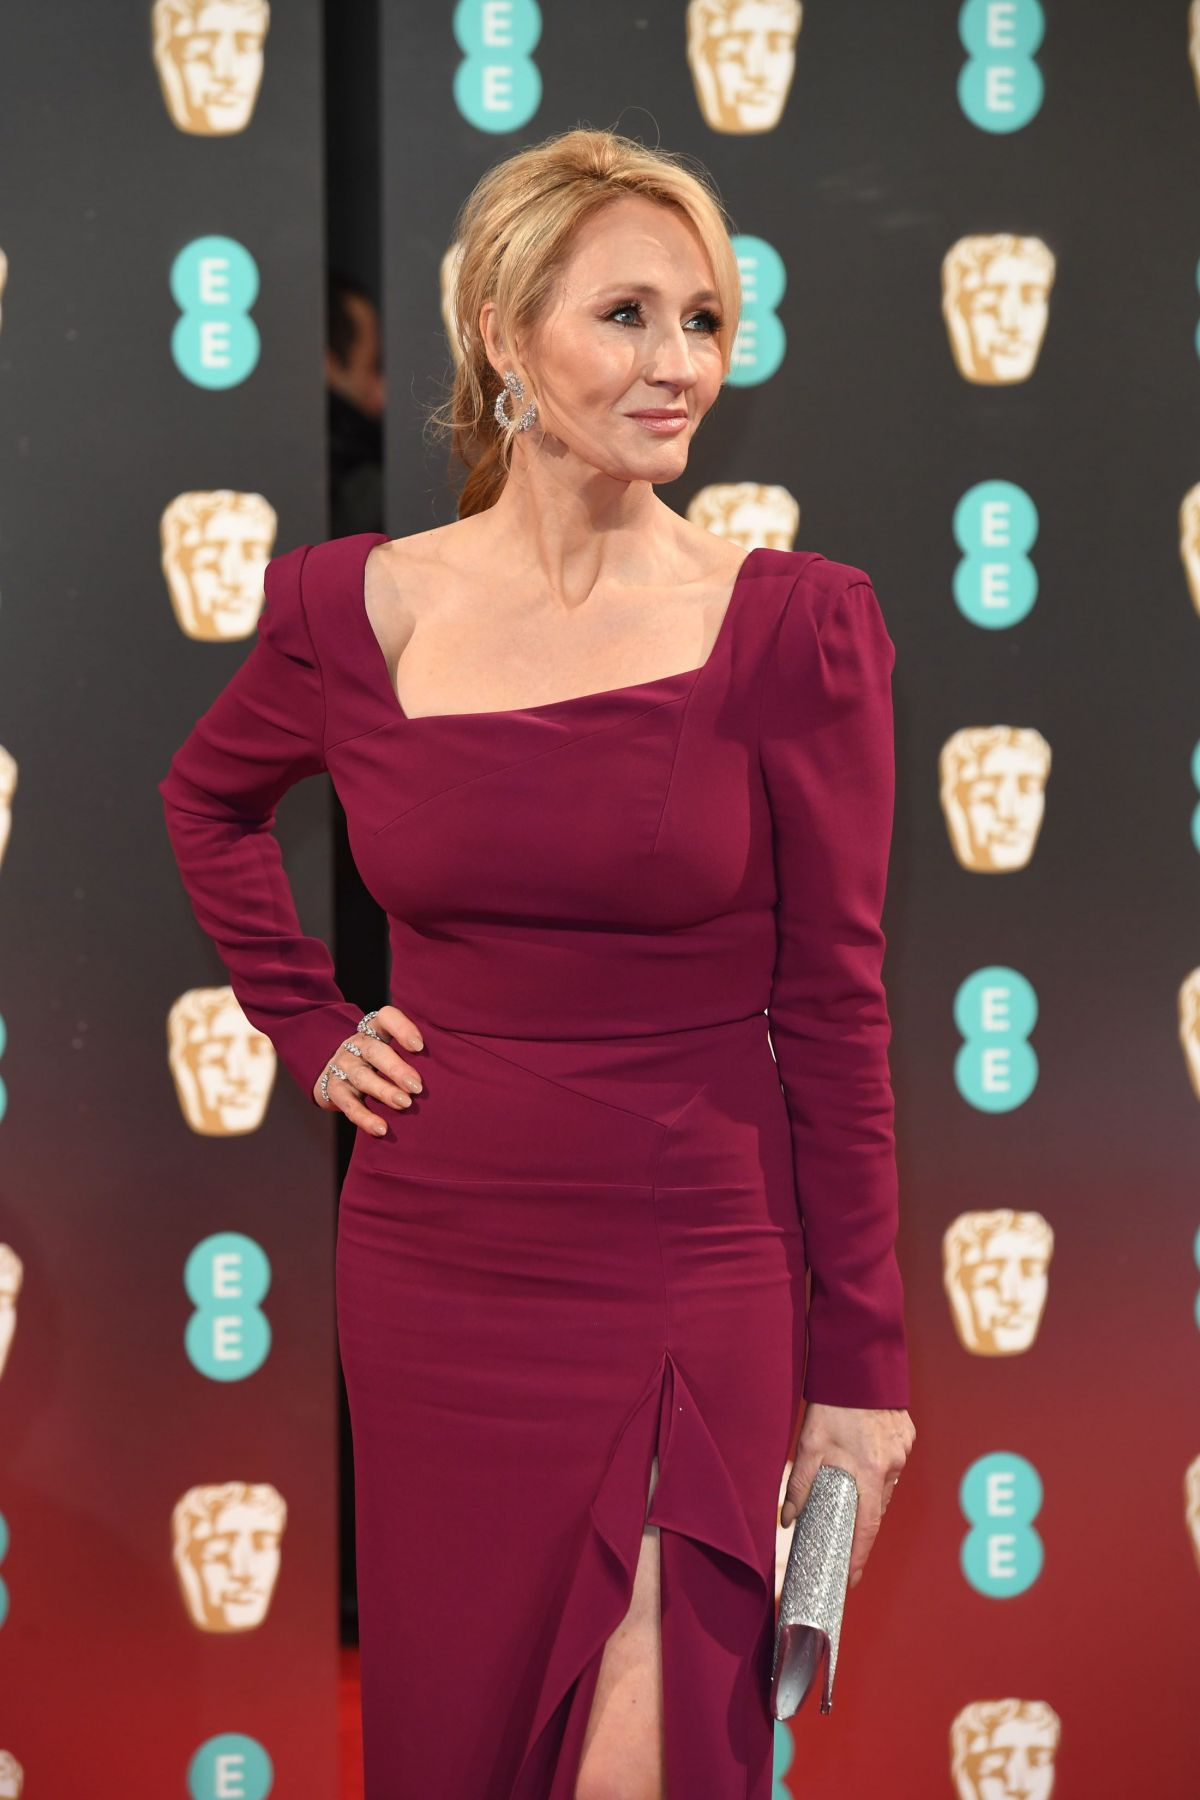 J.K. ROWLING at Bafta 2017 Awards in London 02/12/2017